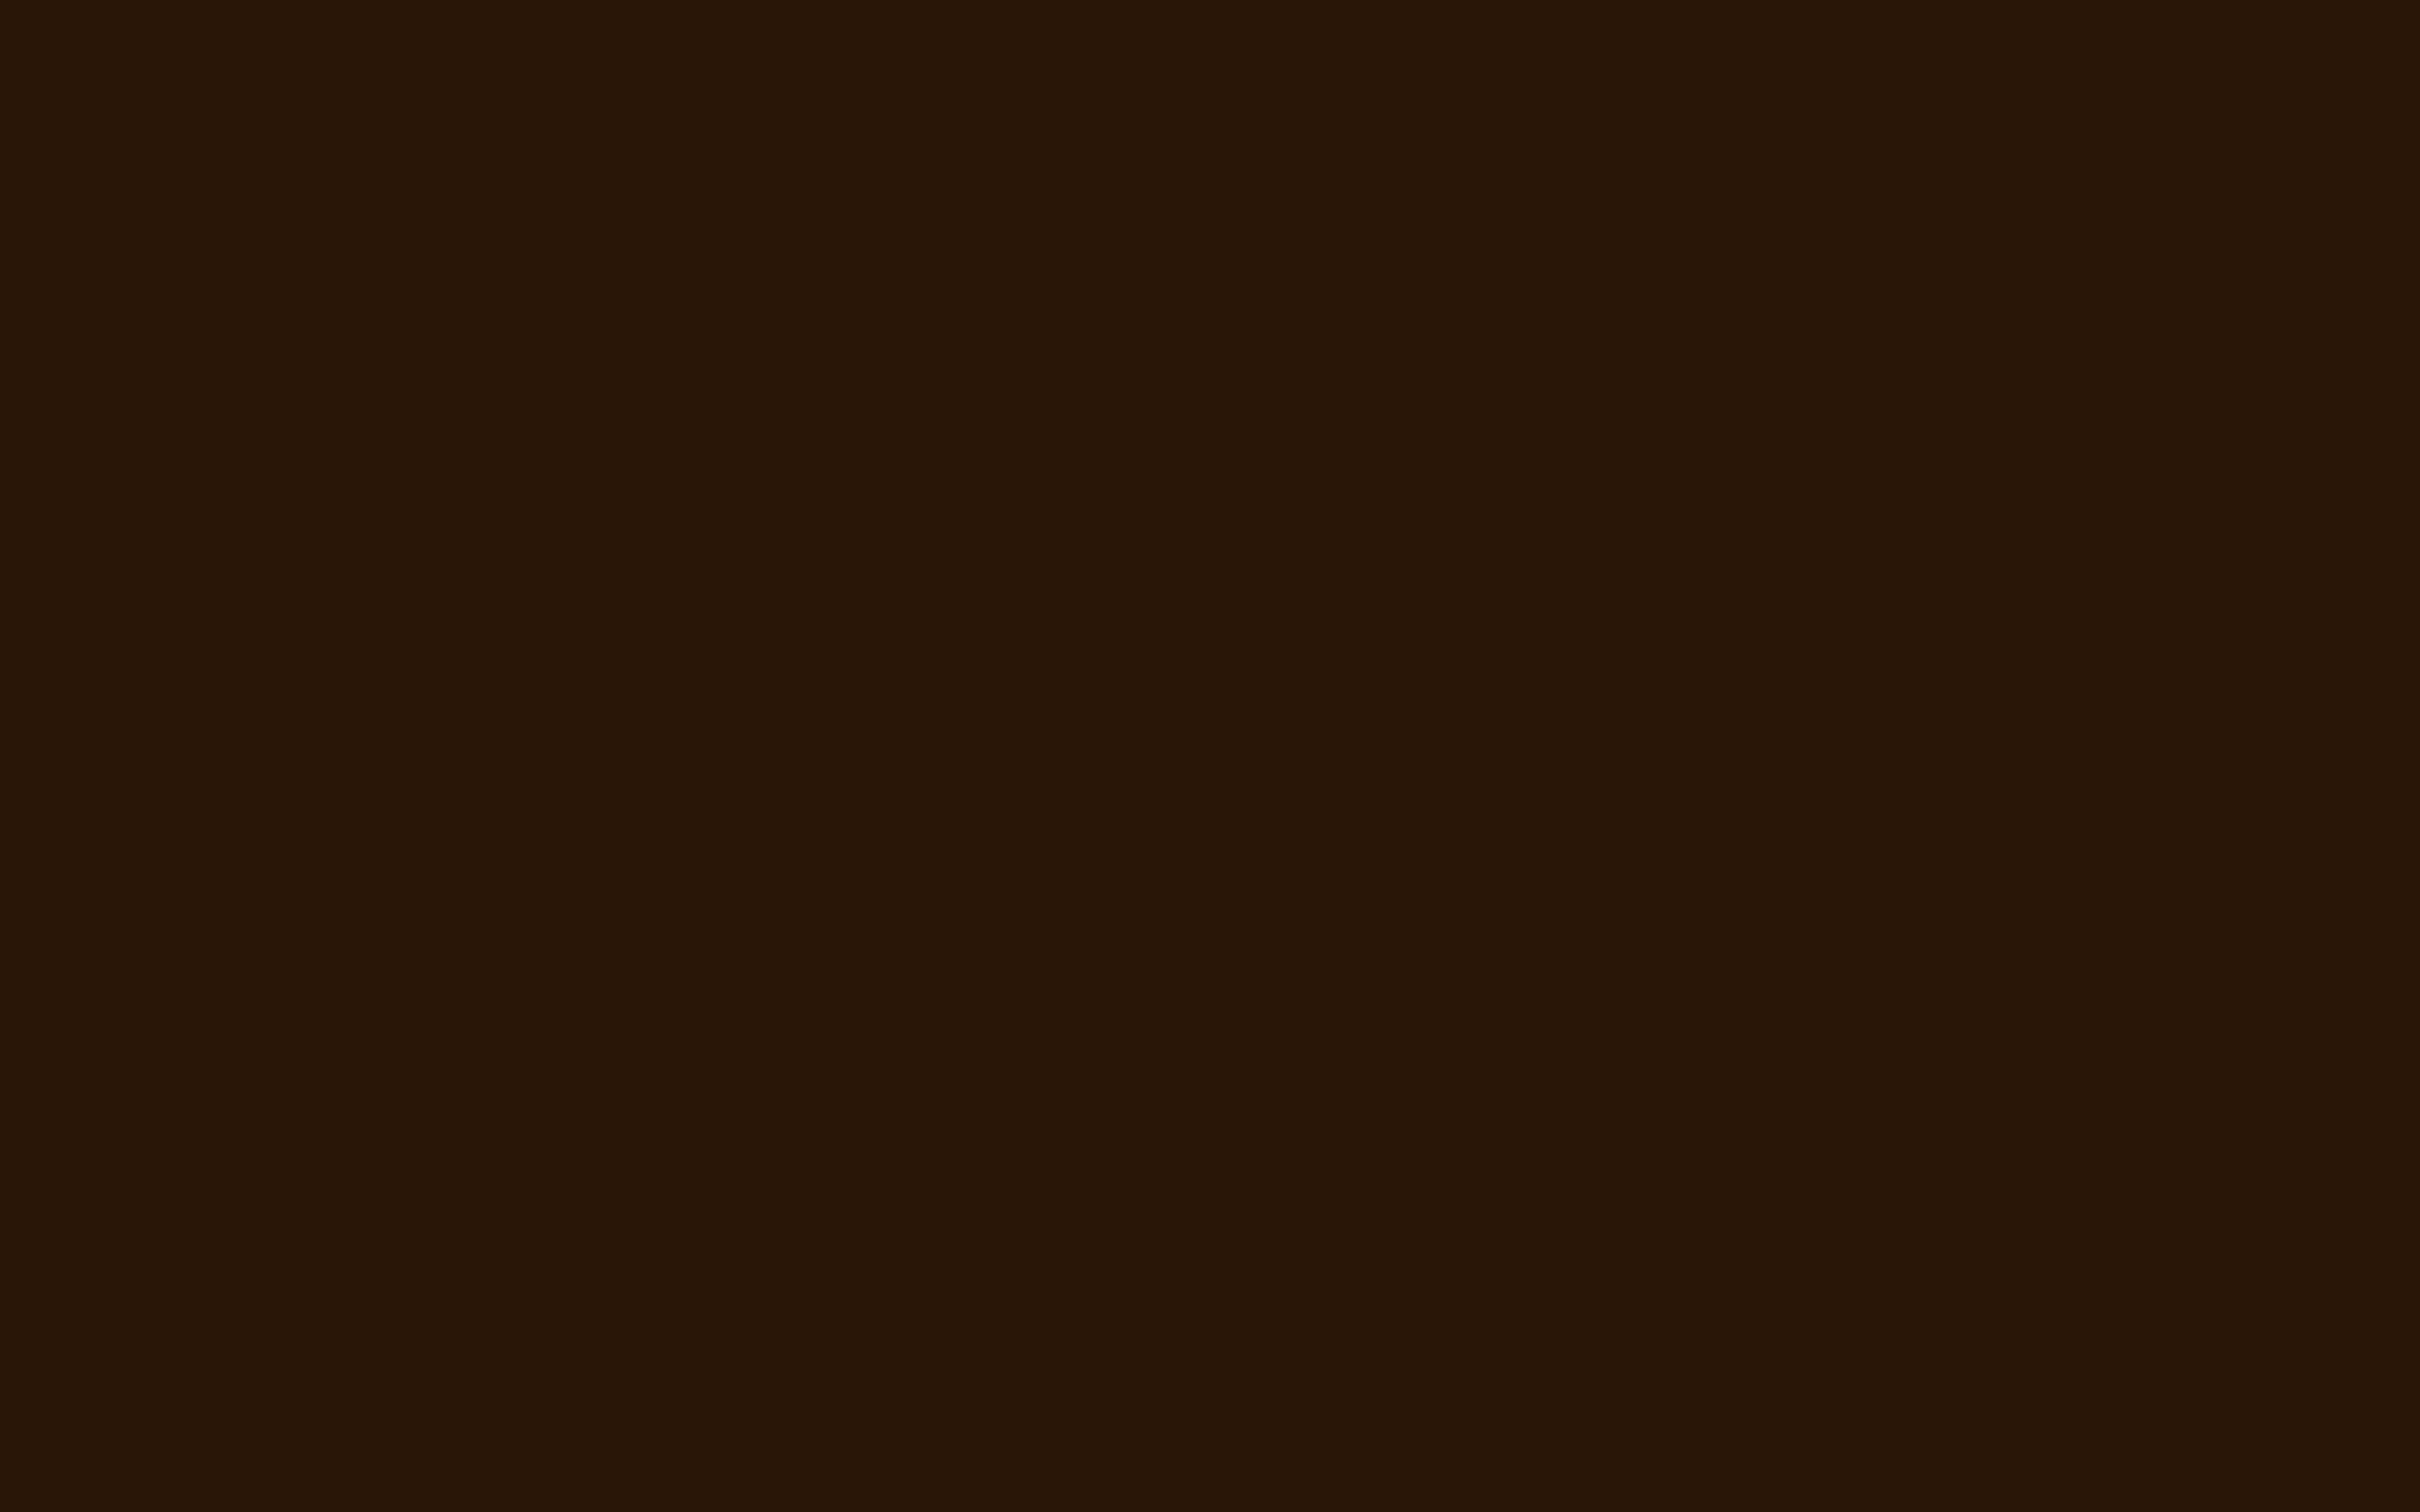 Solid Brown Wallpaper